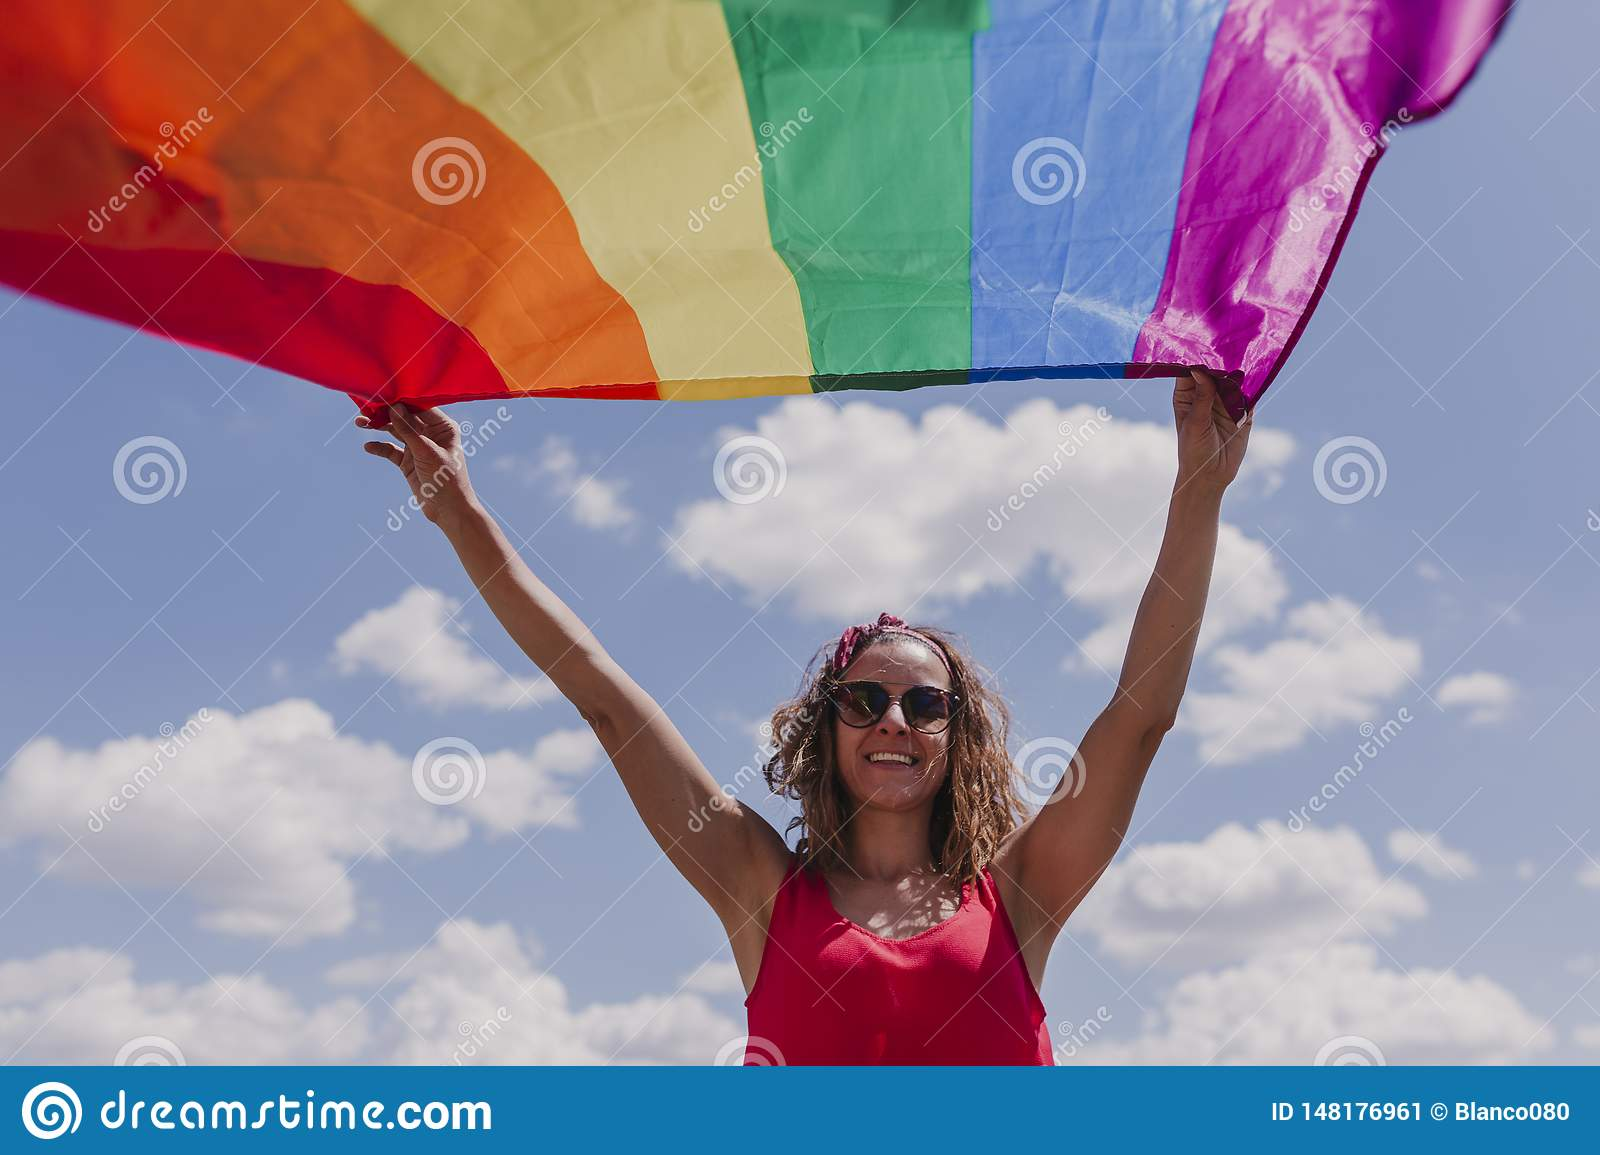 Woman holding the Gay Rainbow Flag over blue and cloudy sky outdoors. Happiness, freedom and love concept for same sex couples.